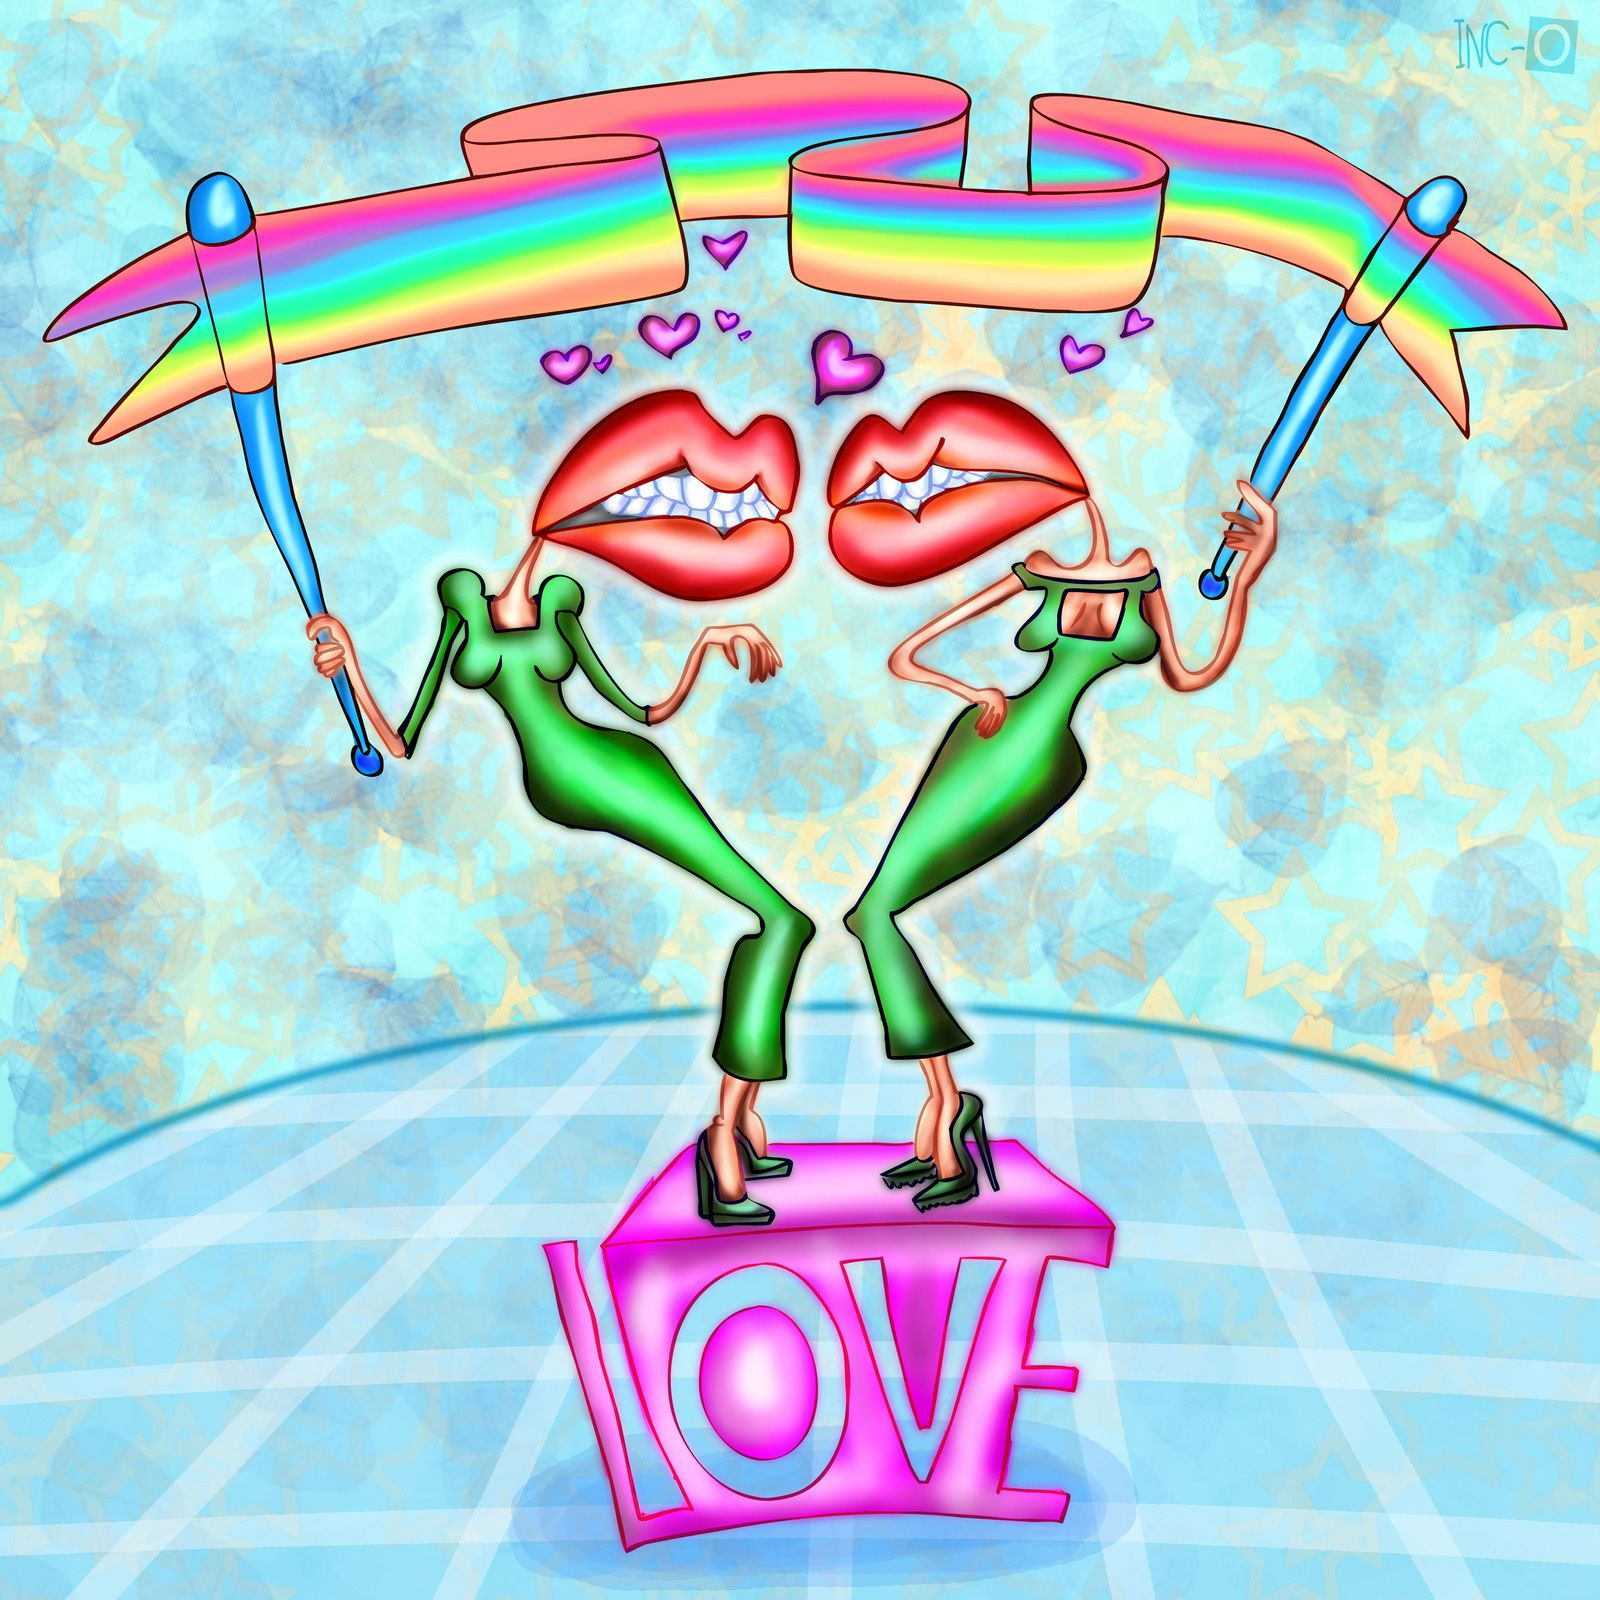 Love is gay